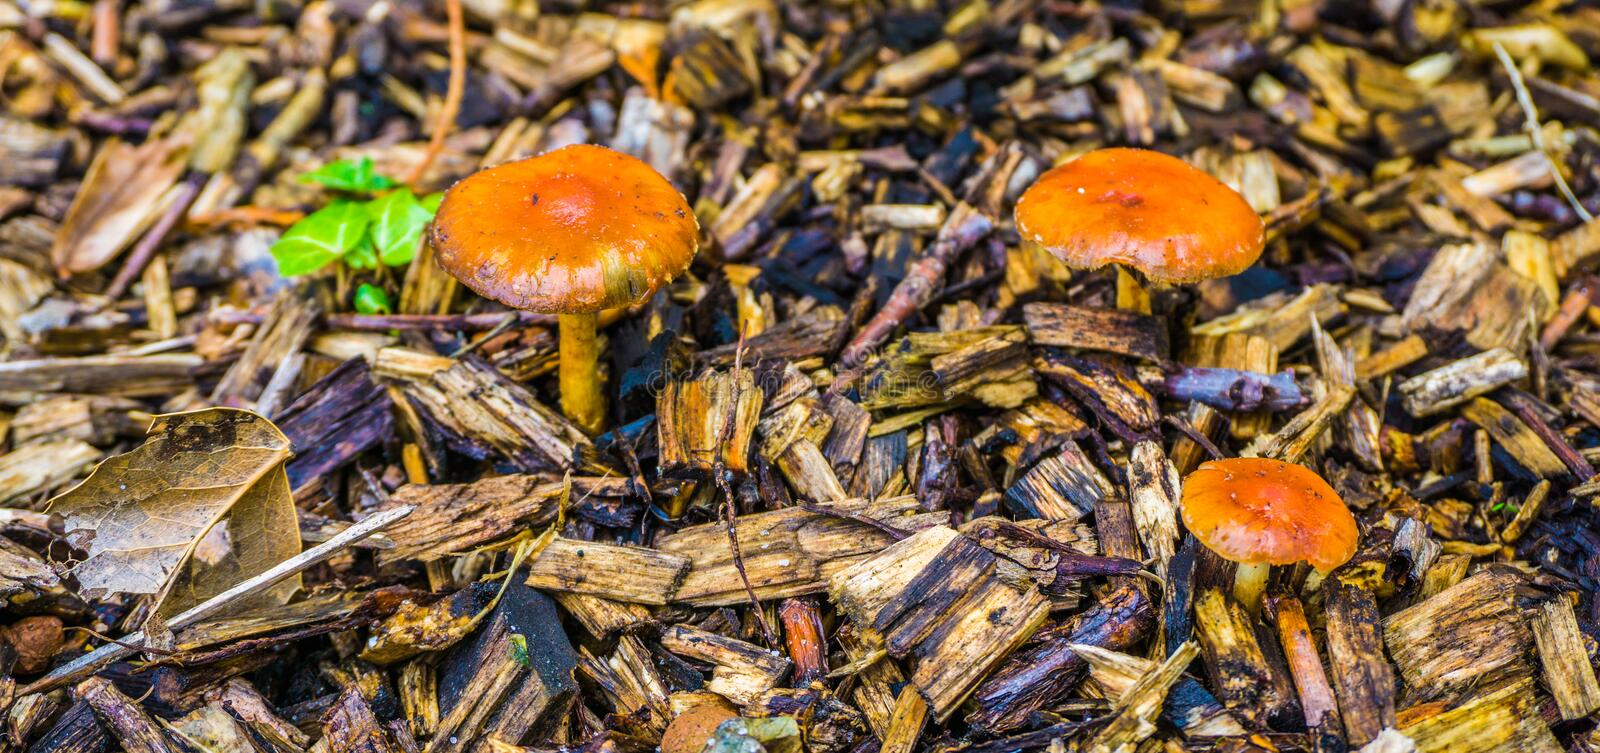 Macro close up in autumn season of some small orange brown round mushrooms. In wood chips stock photo